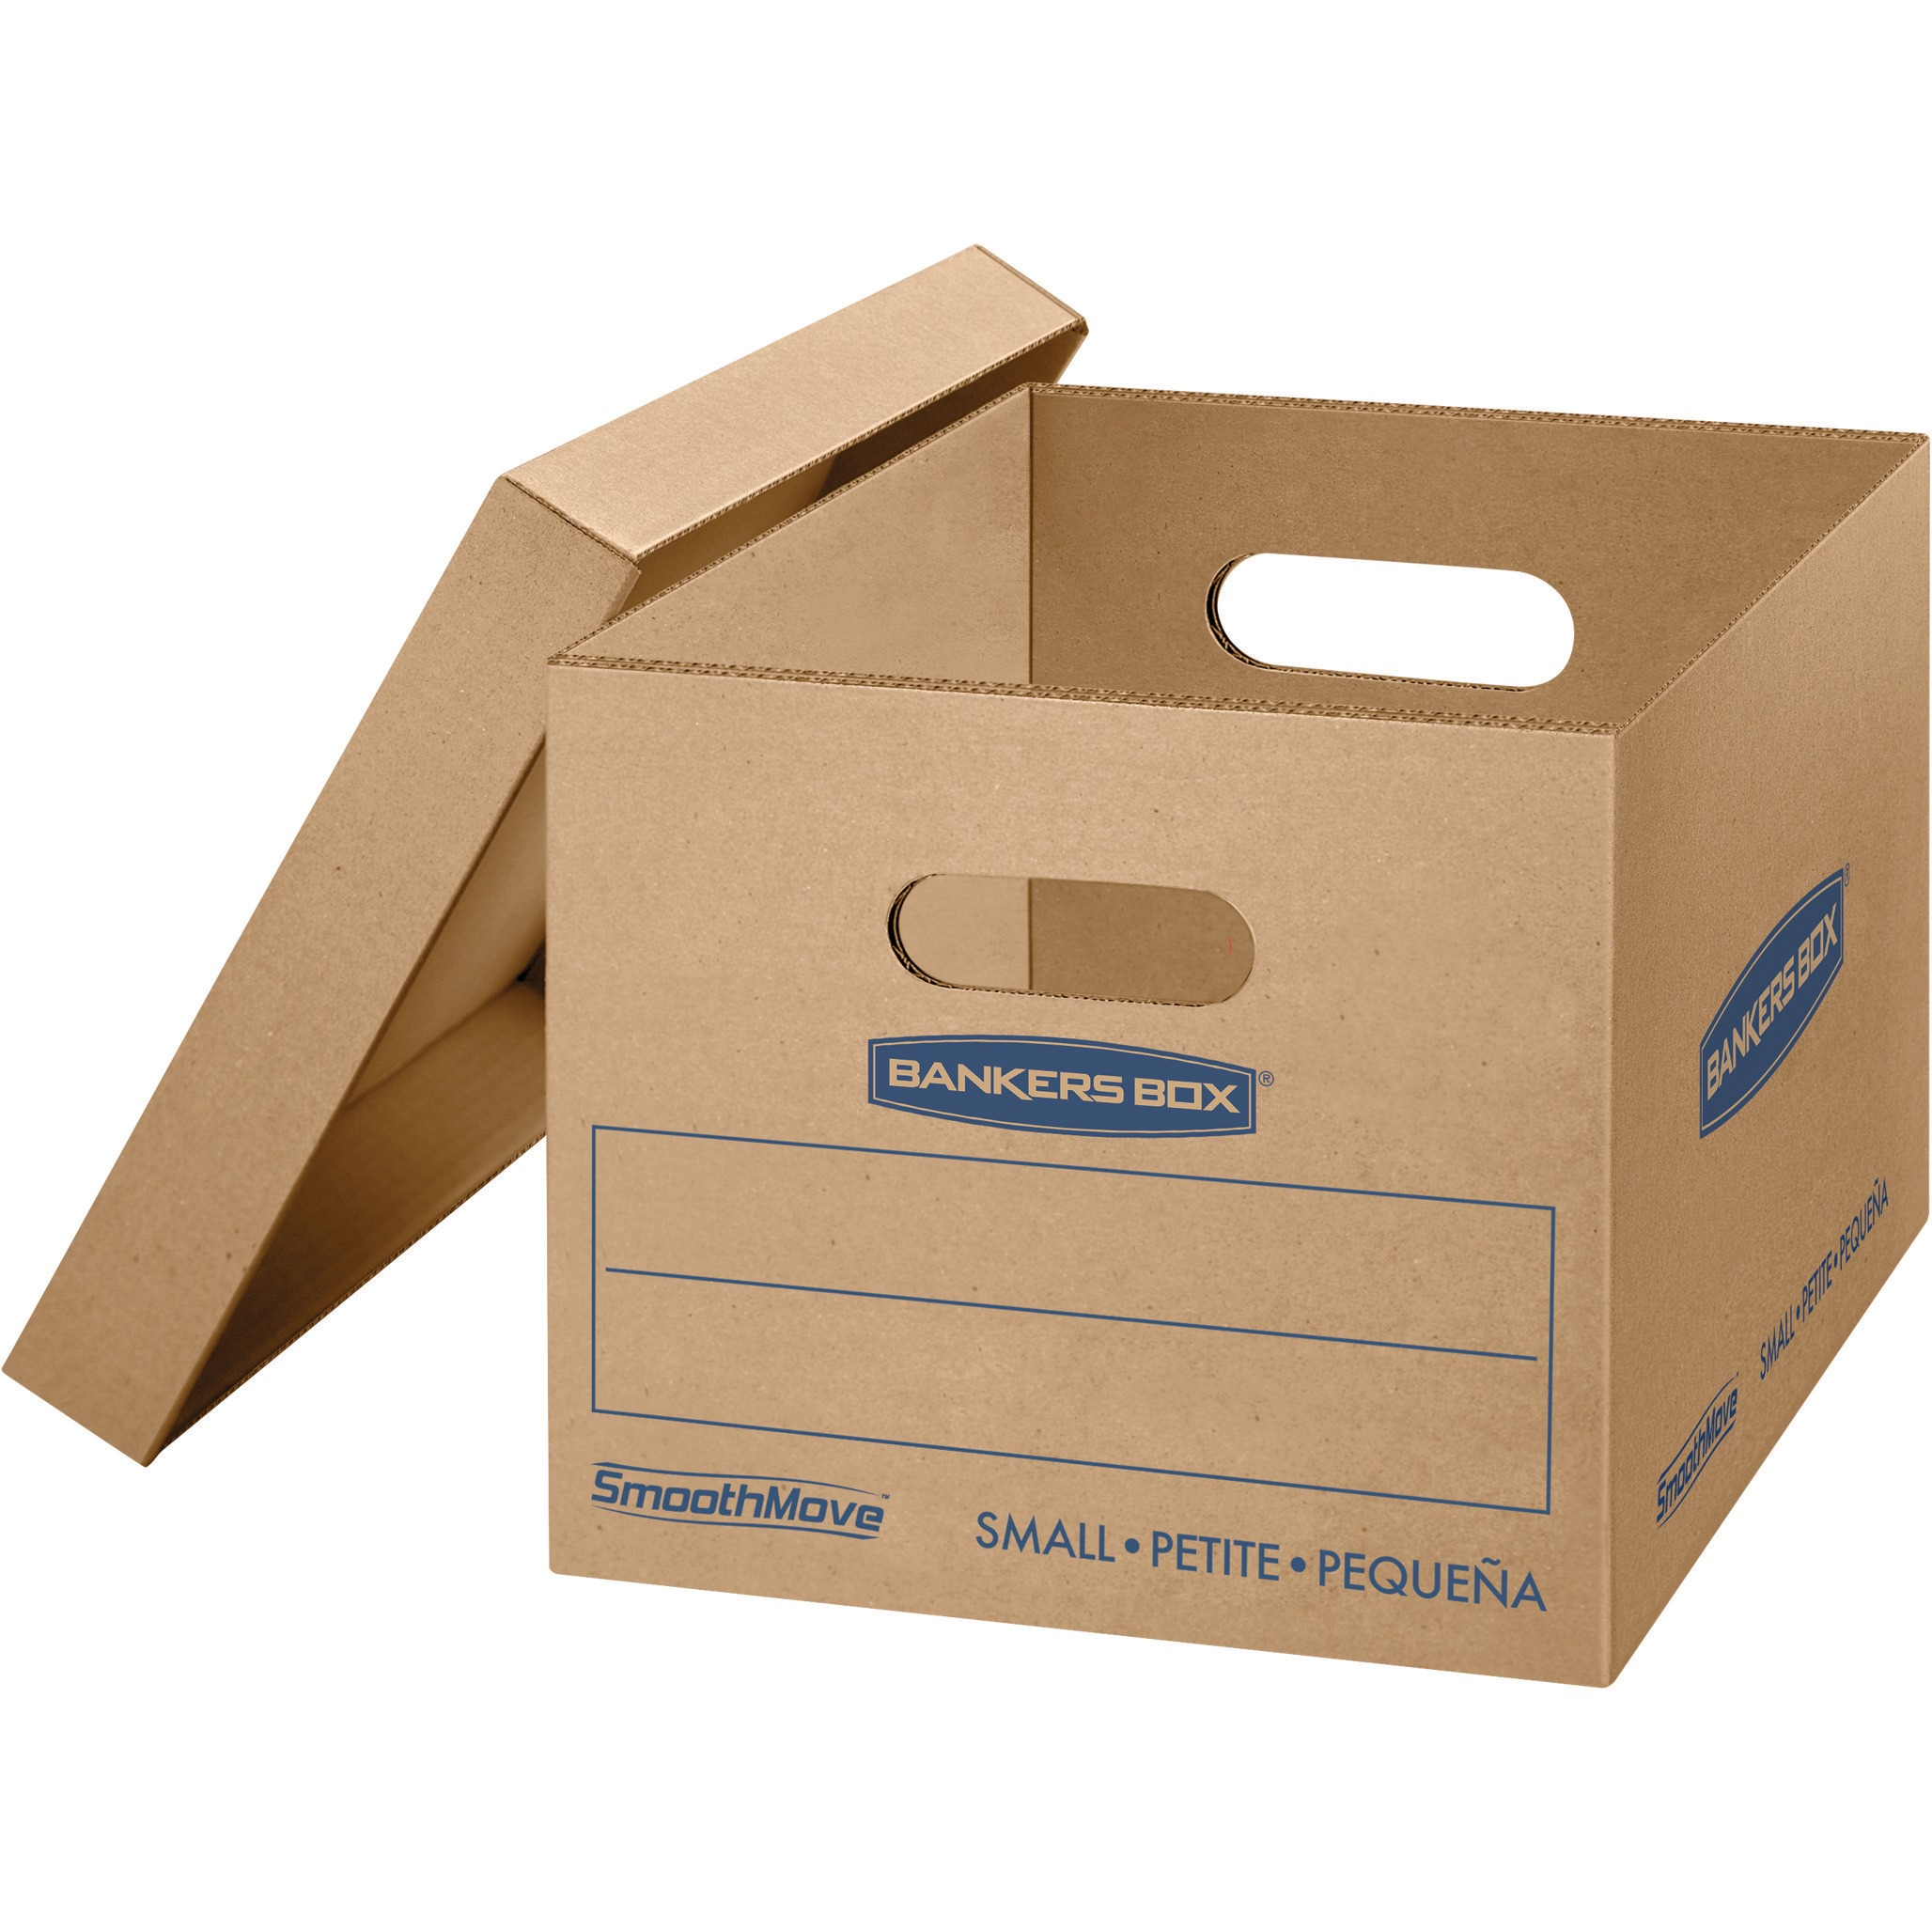 Bankers Box SmoothMove Classic Moving Boxes, Small 20pk, Kraft, 20 / Carton (Quantity)